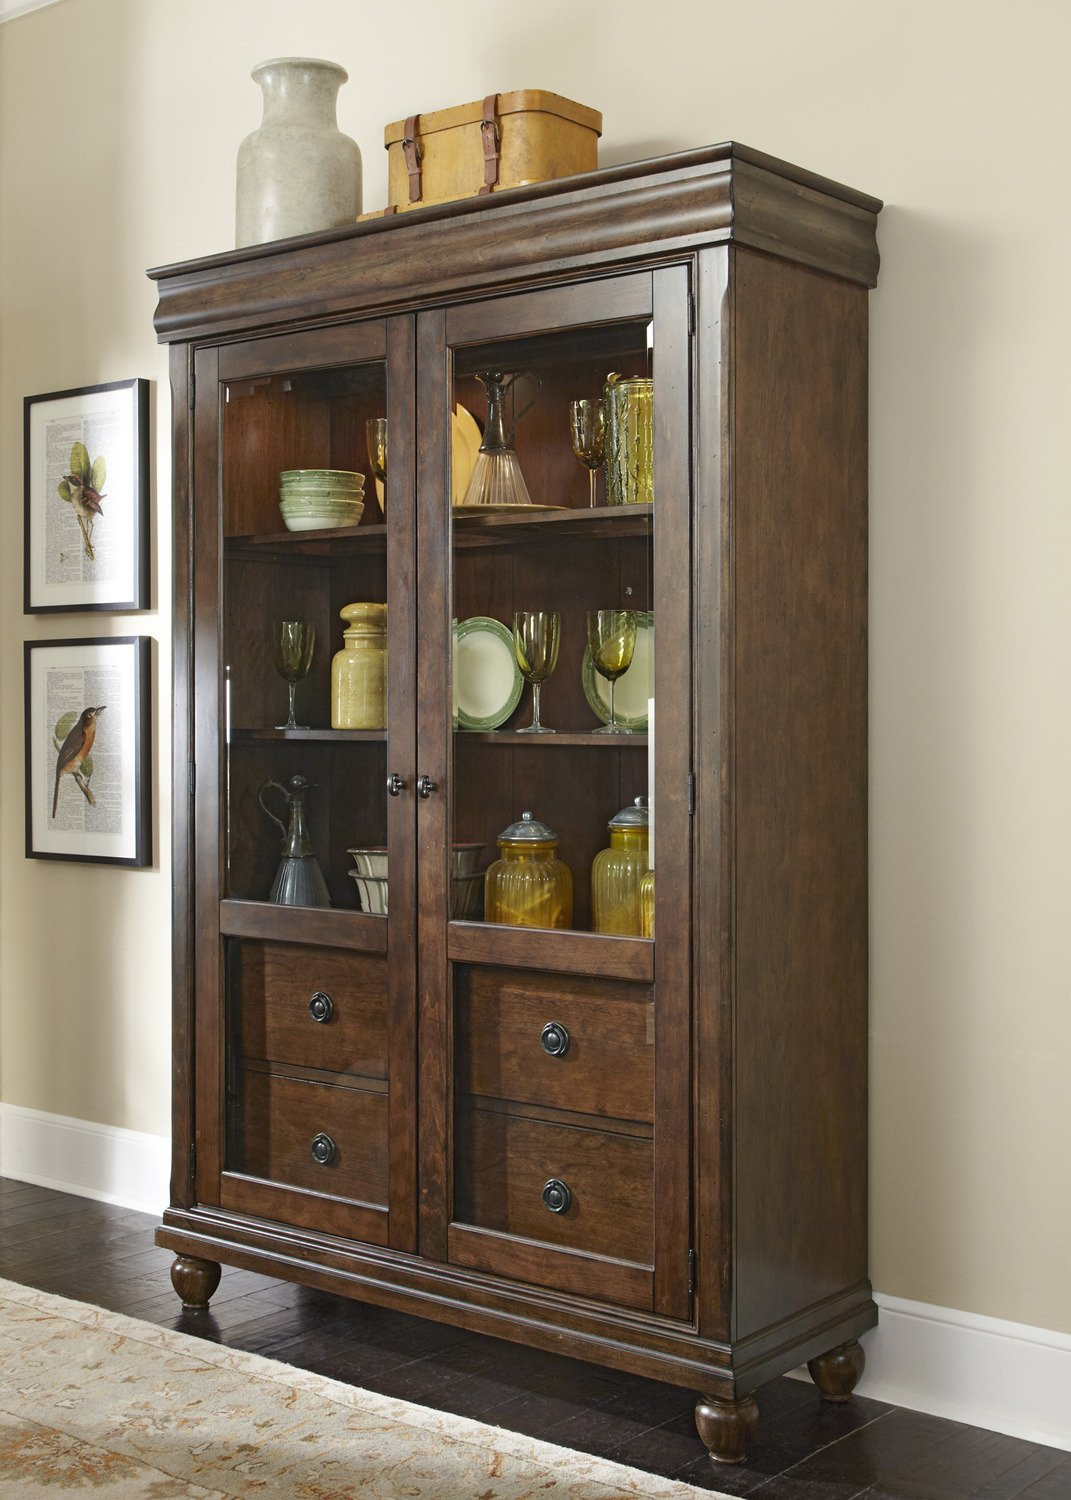 Amazon com liberty furniture industries 589 ch5278 rustic tradition dining display cabinet china cabinets